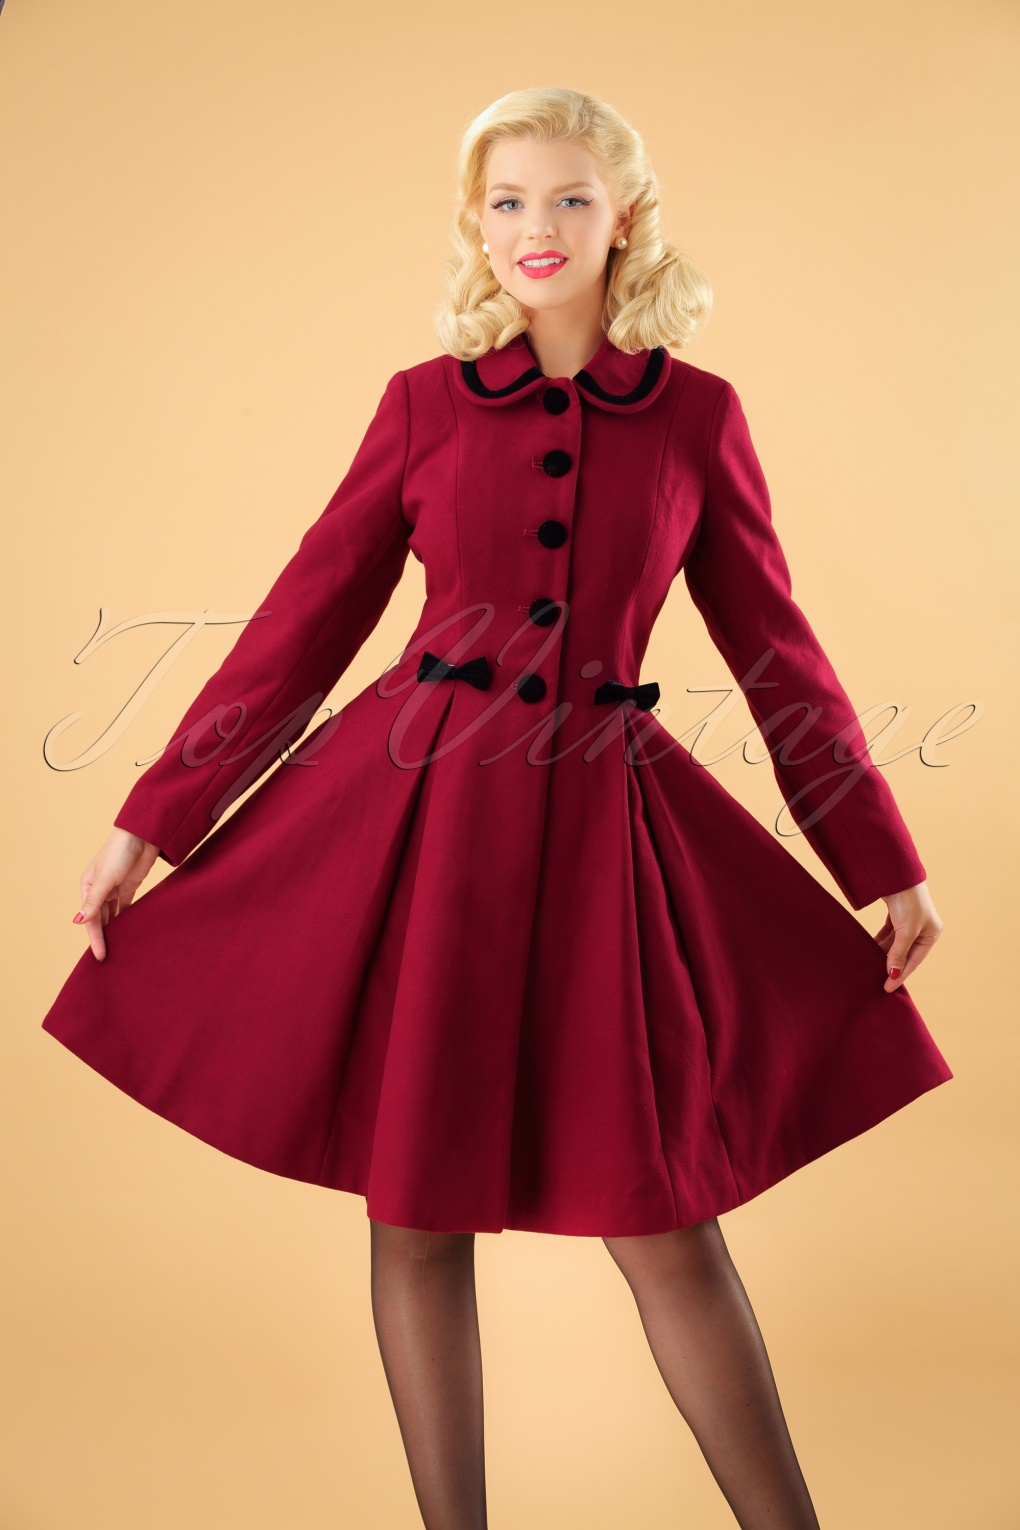 Retro Tiki Dress – Tropical, Hawaiian Dresses 50s Olivia Bow Coat in Dark Red £114.89 AT vintagedancer.com